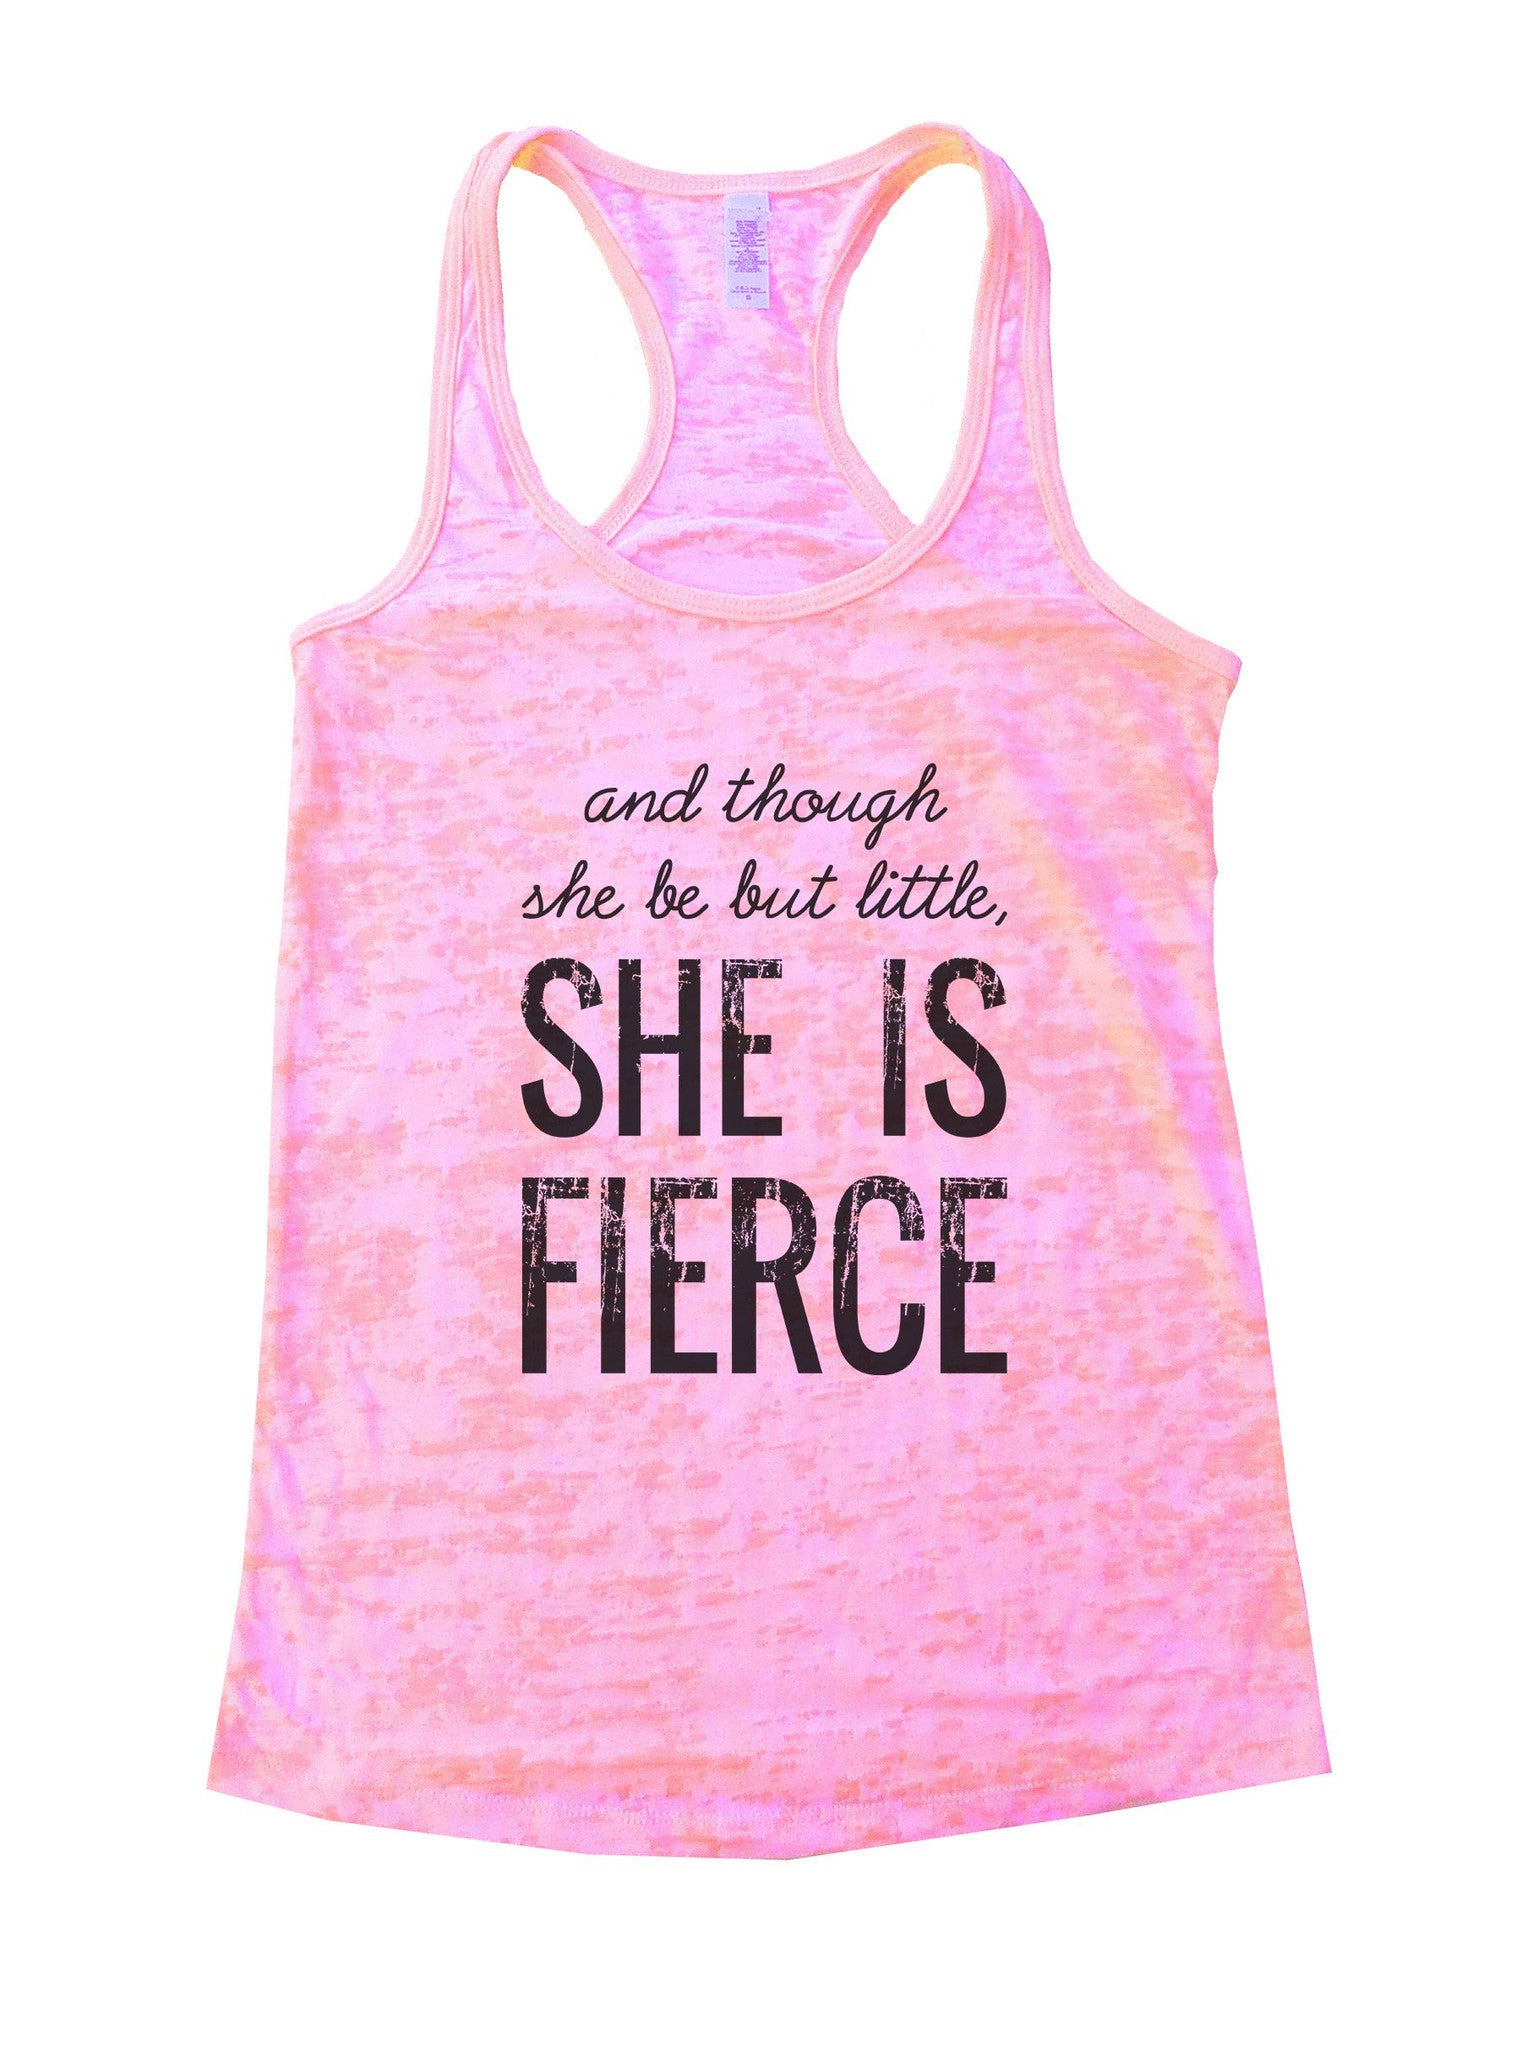 And Though She Be But Little, She Is Fierce Burnout Tank Top By BurnoutTankTops.com - 950 - Funny Shirts Tank Tops Burnouts and Triblends  - 2